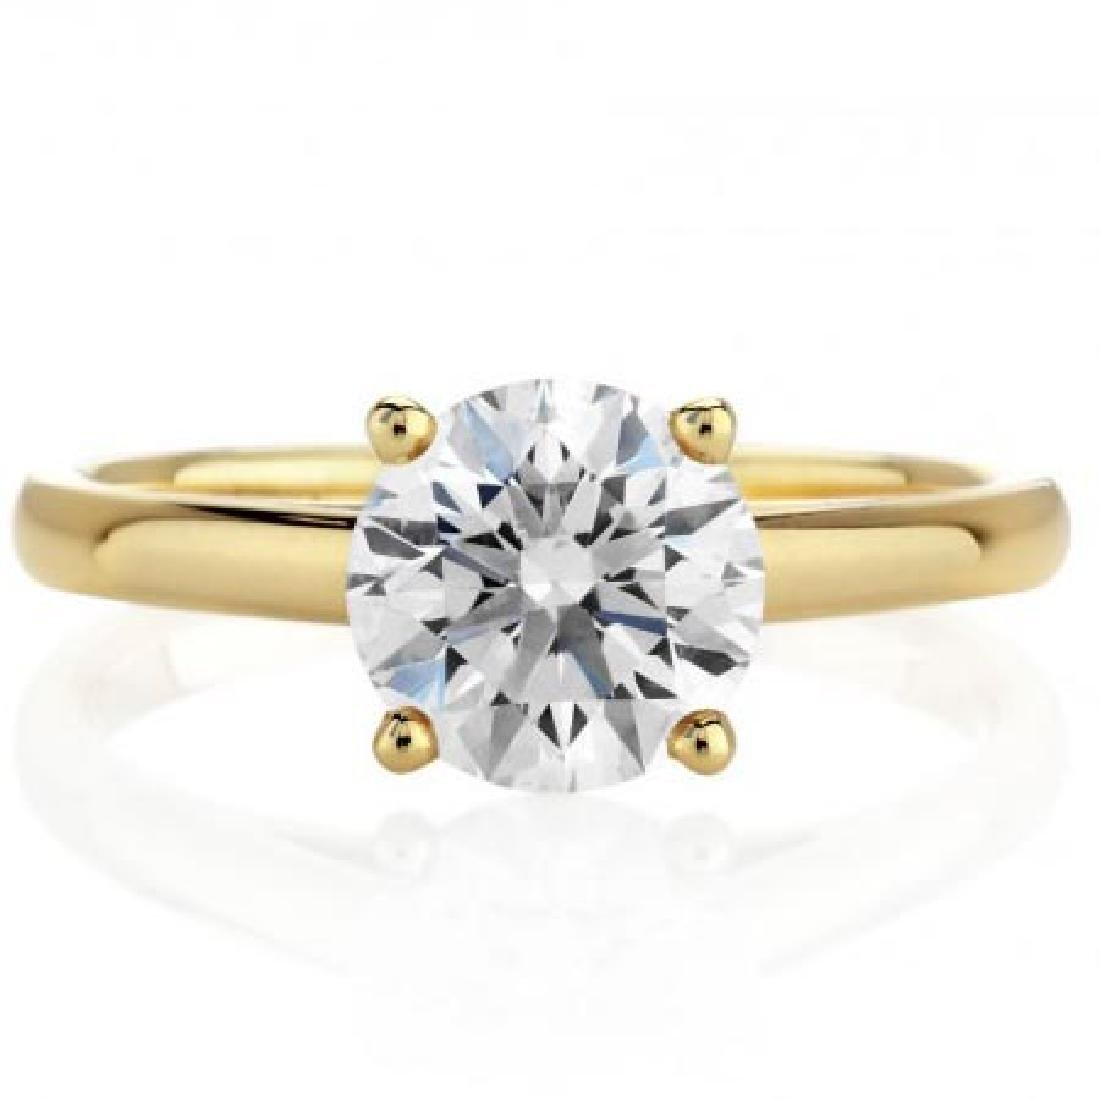 CERTIFIED 0.56 CTW ROUND I/SI1 SOLITAIRE RING IN 14K YE